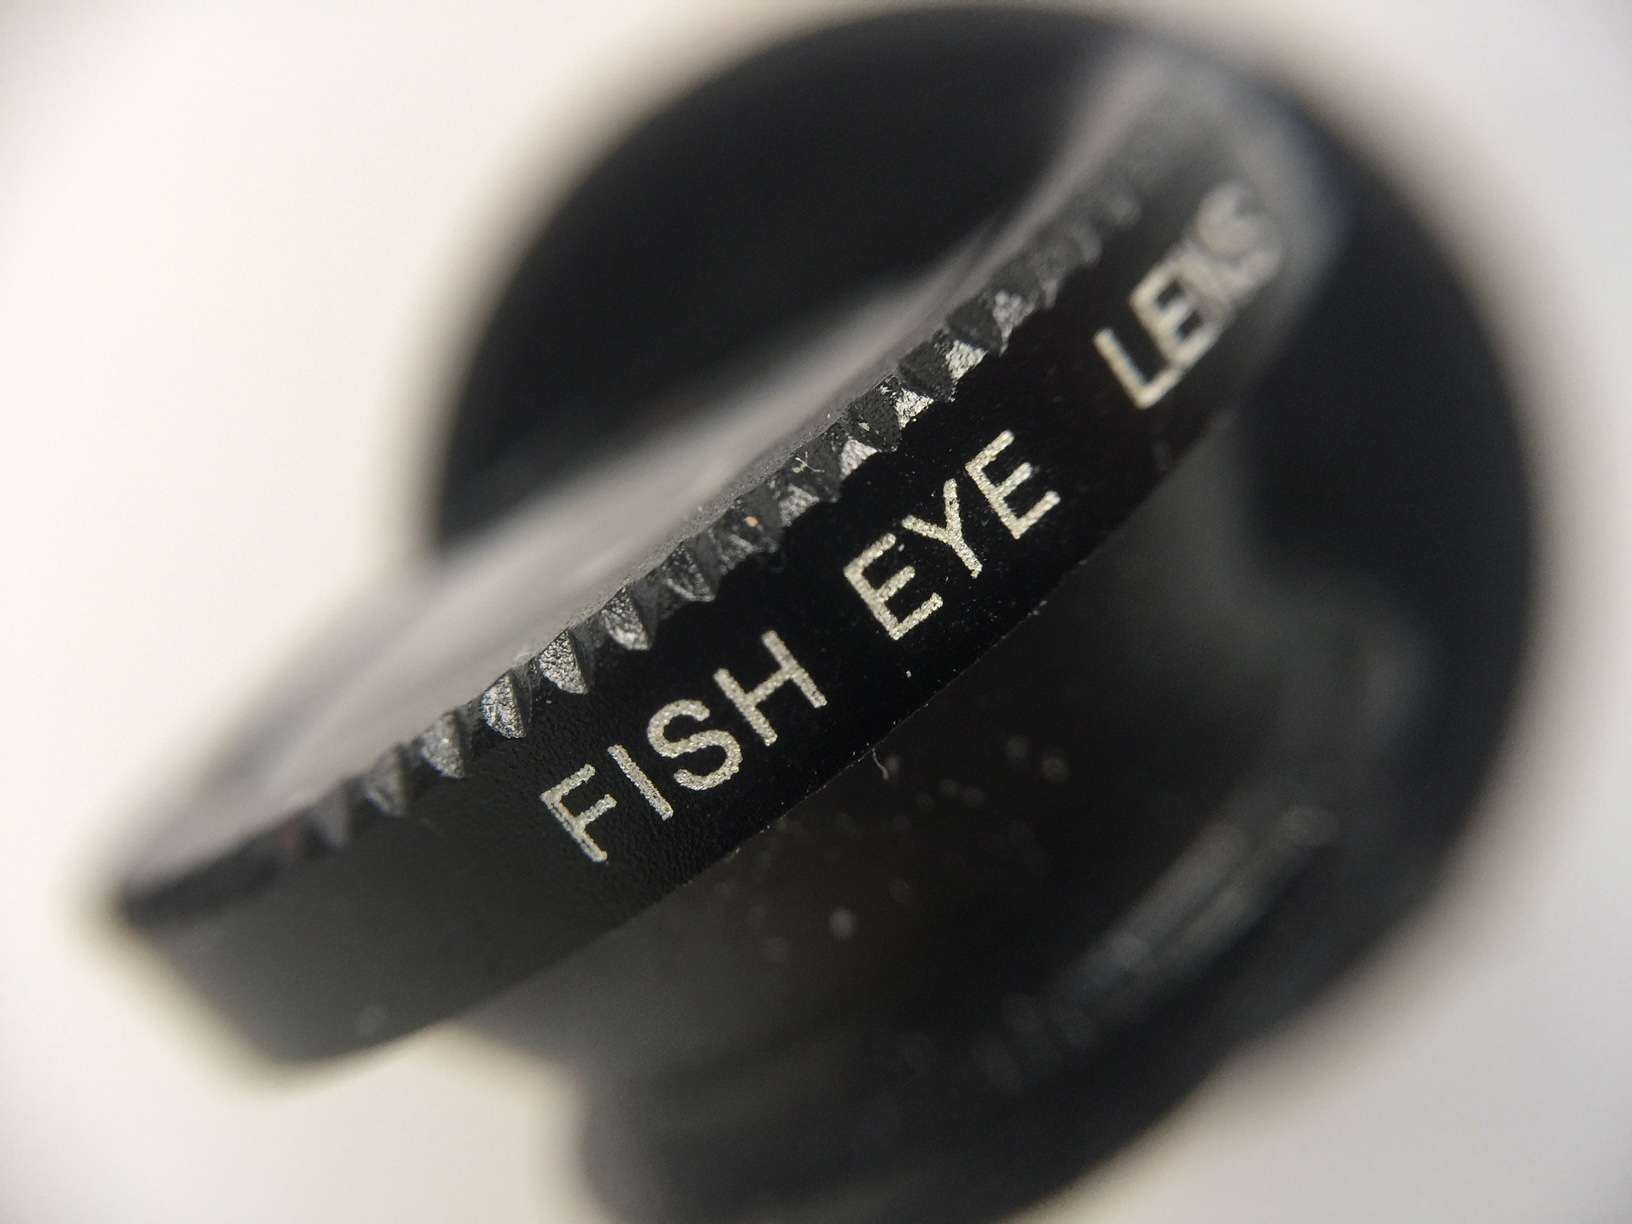 Fish Eye lens taken using a clip-on macro lens on an iPhone 6 Plus (7dayshop.com)